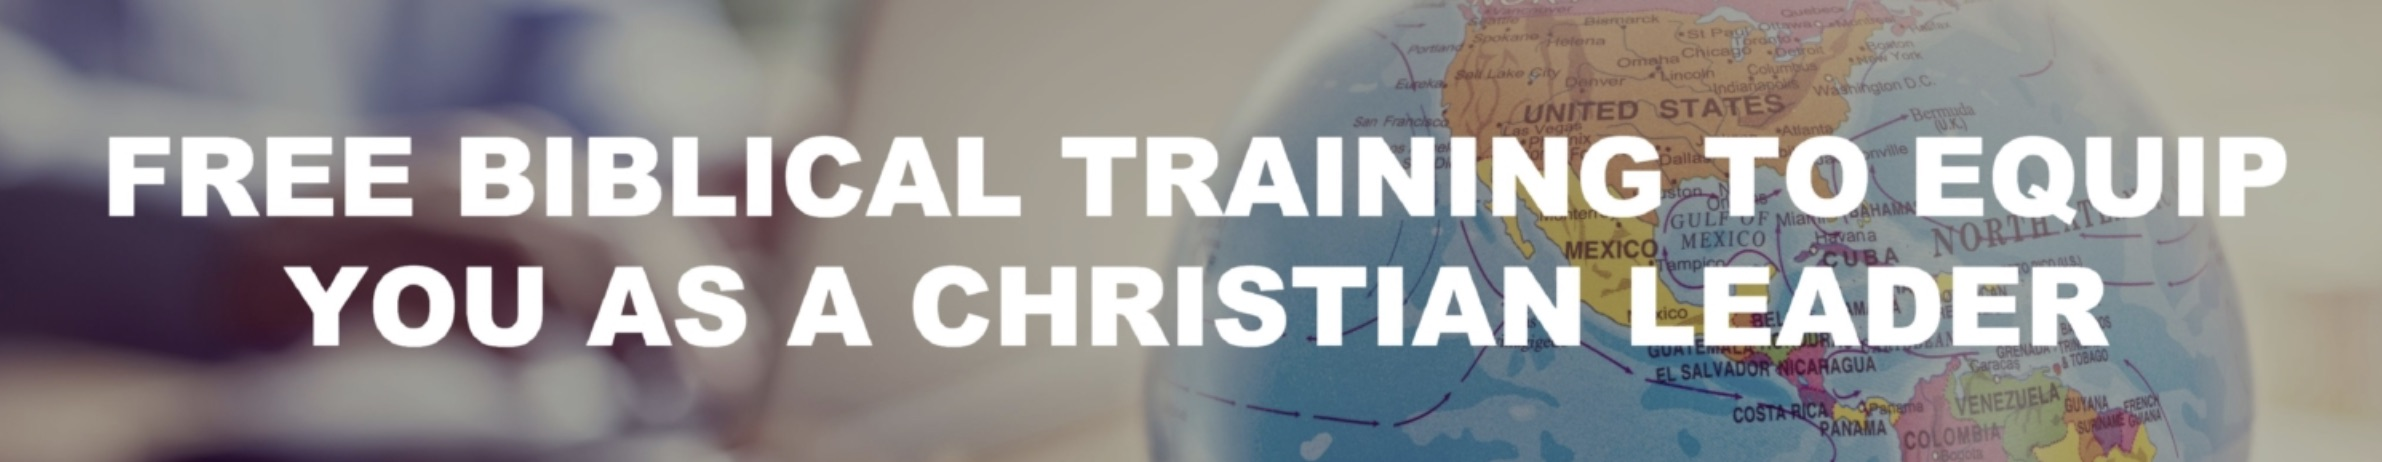 Free Biblical Training banner